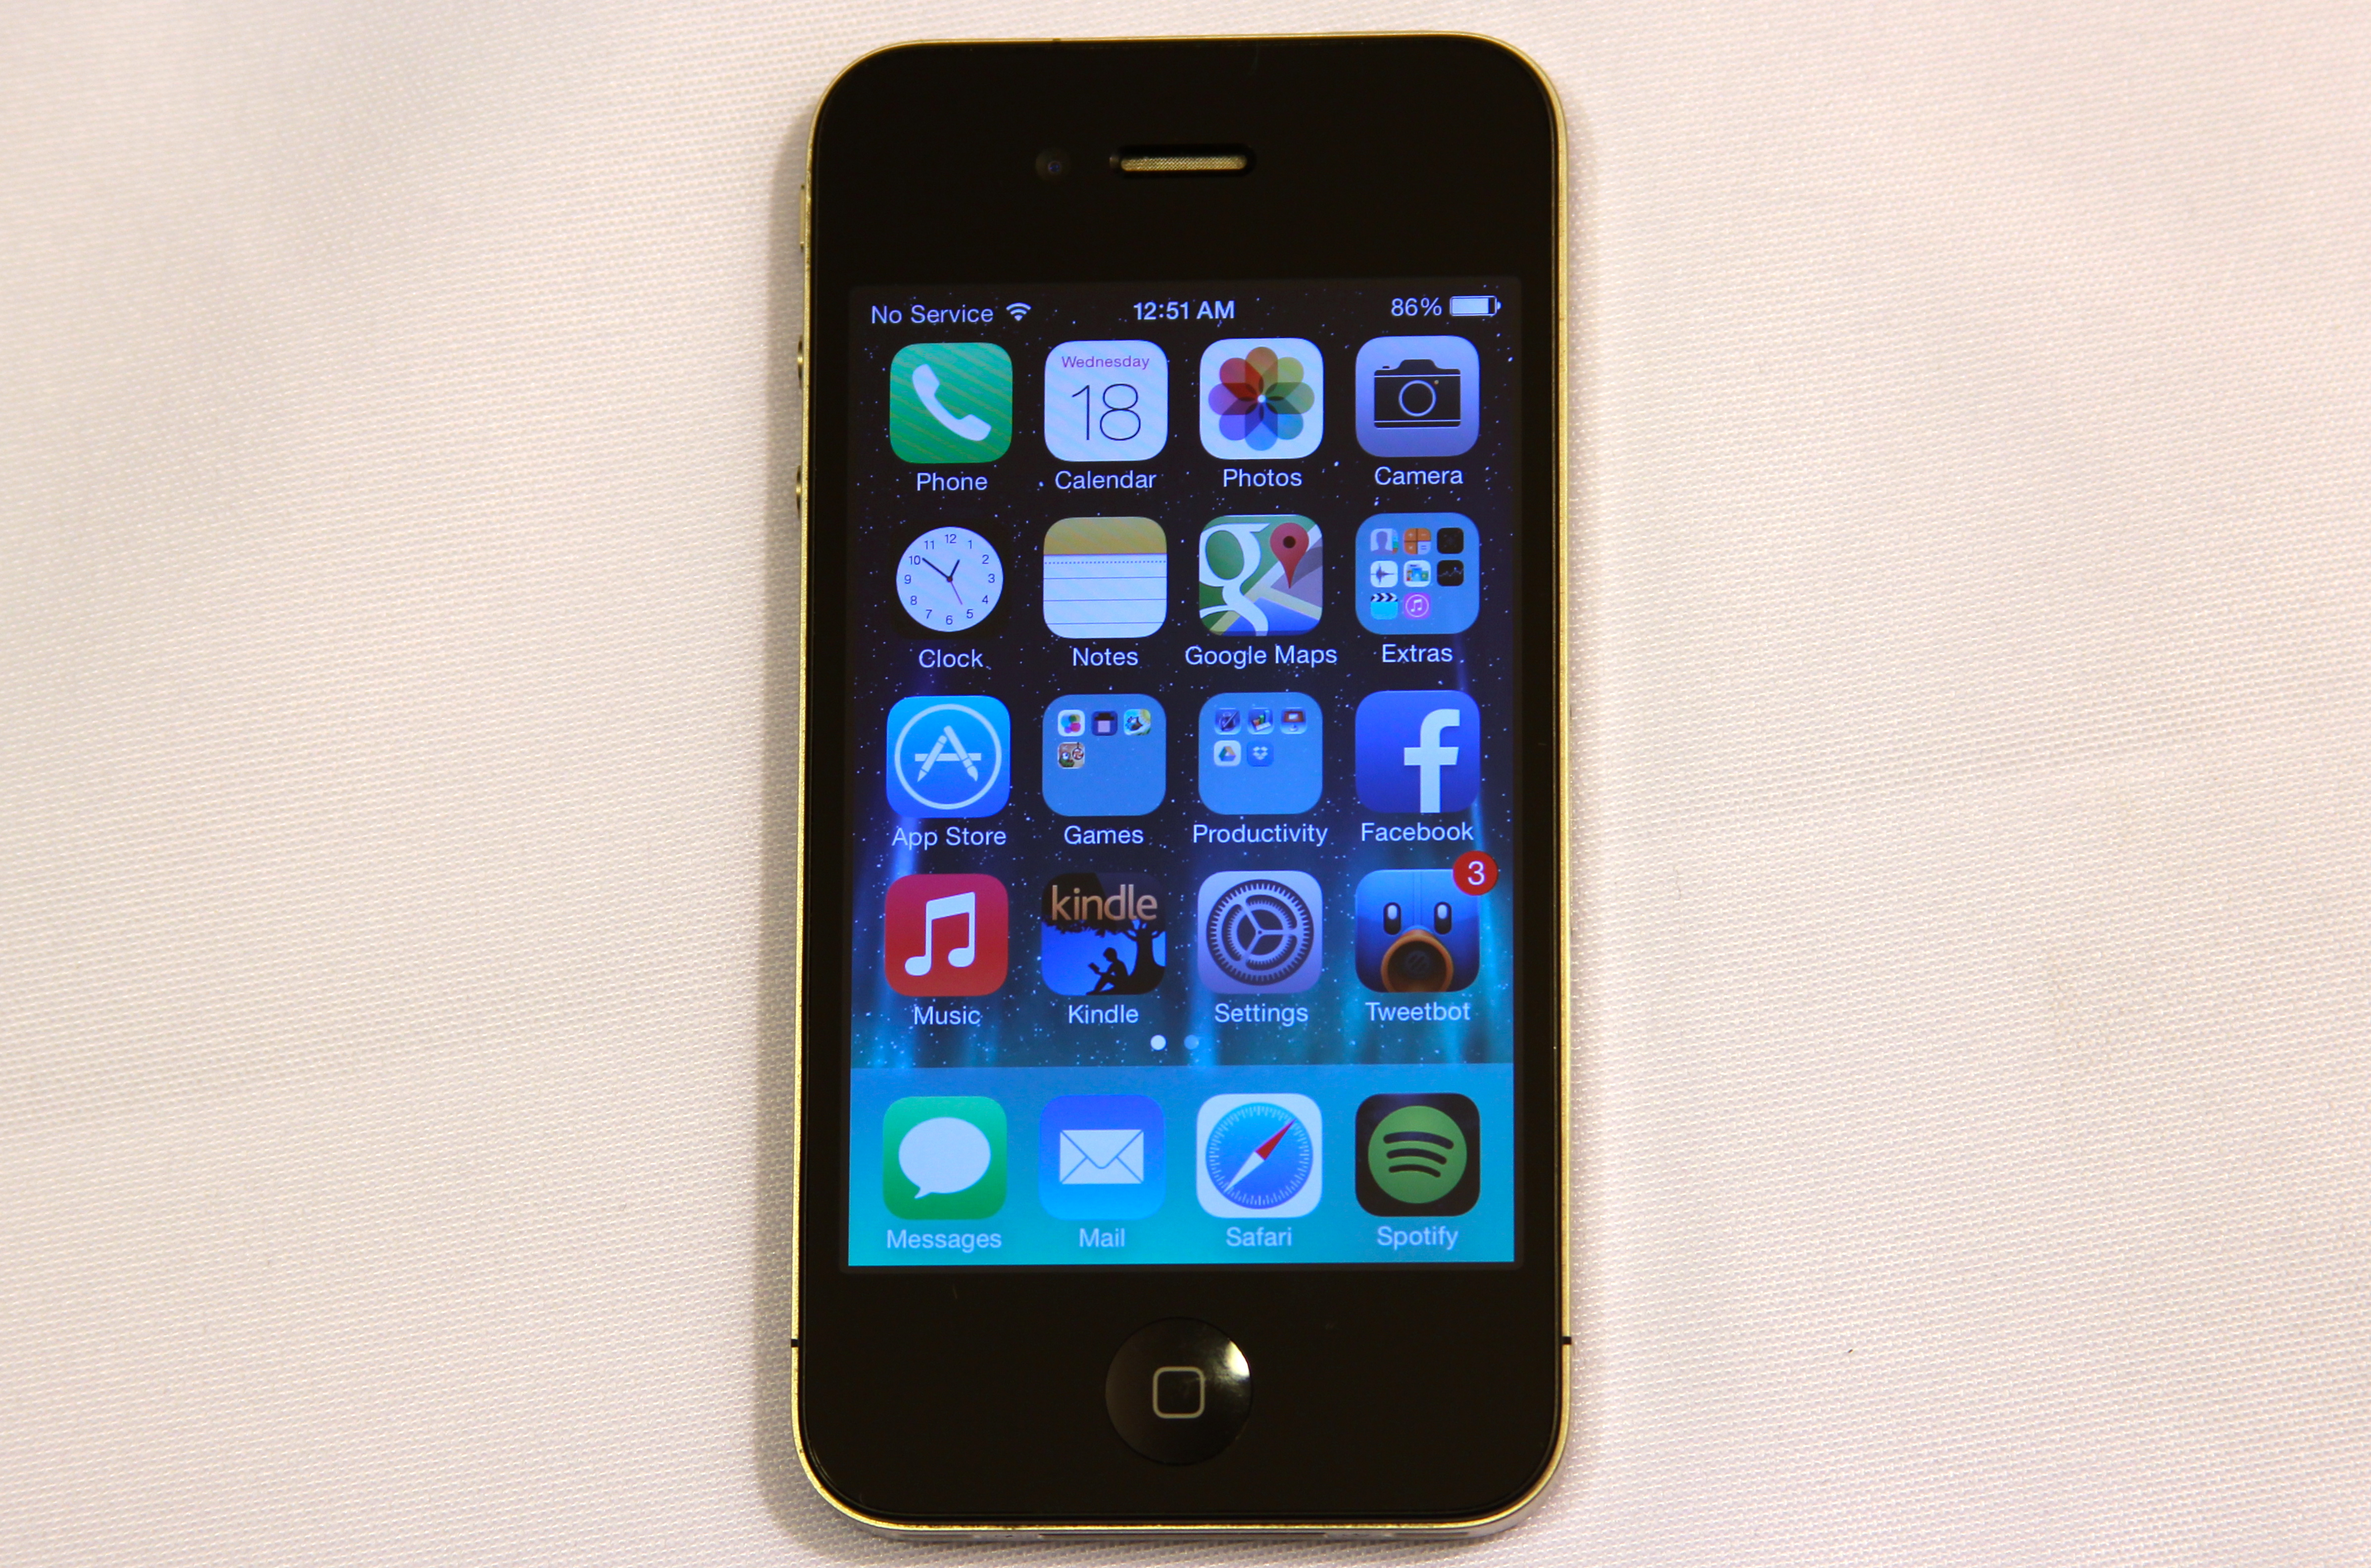 iOS 7 runs on the iPhone 4, but there are definite compromises.